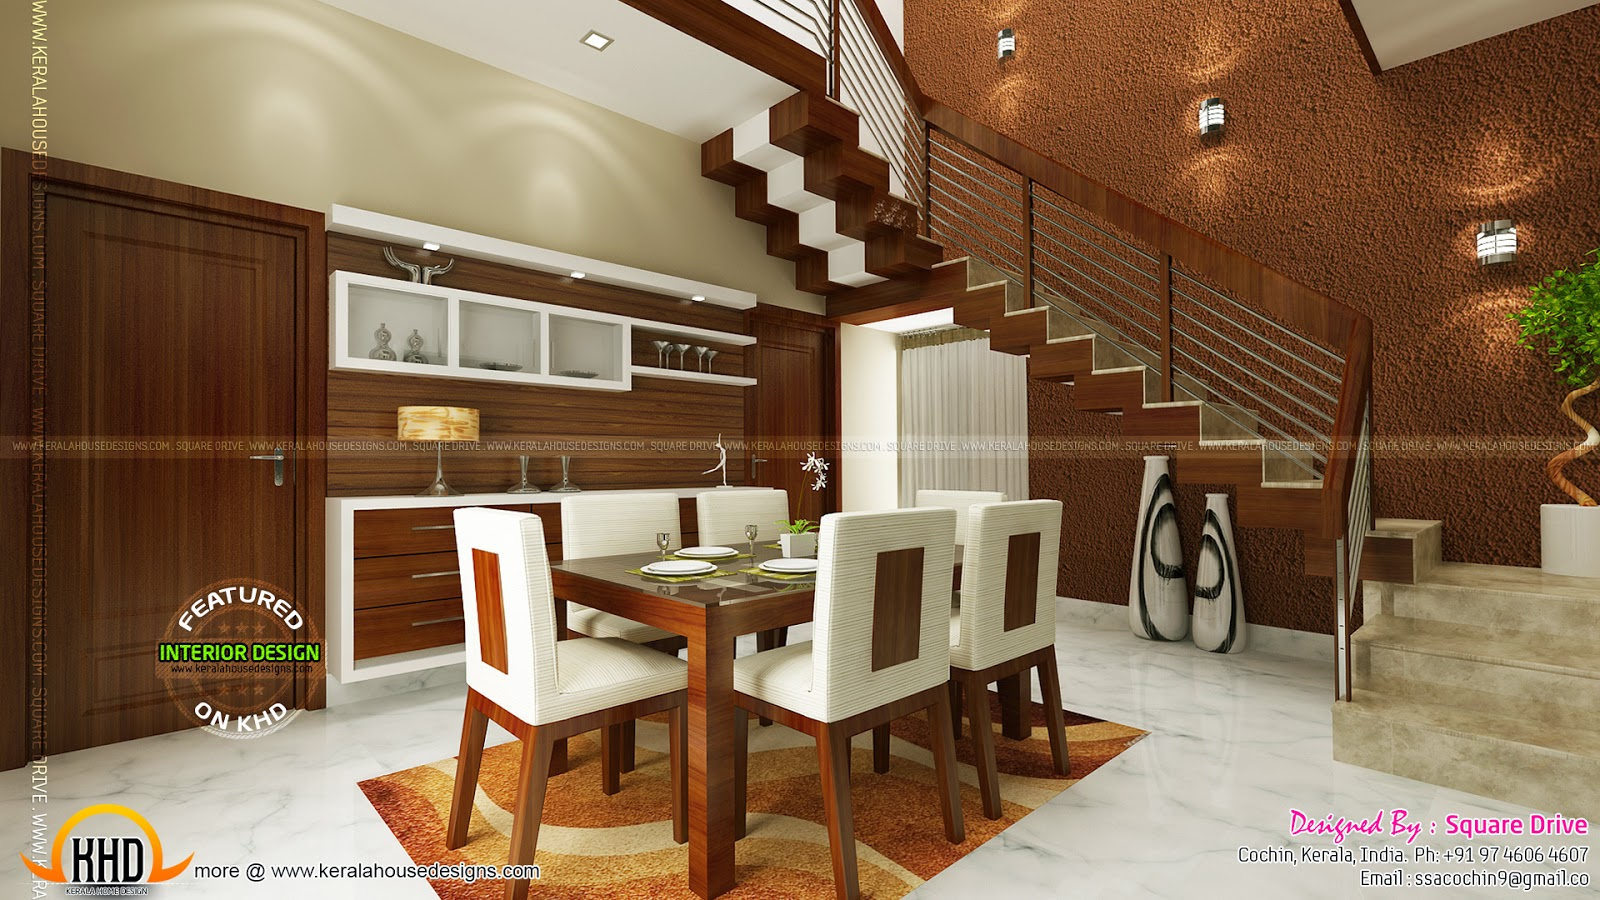 Cochin interior design kerala home design and floor plans for Home interior design room